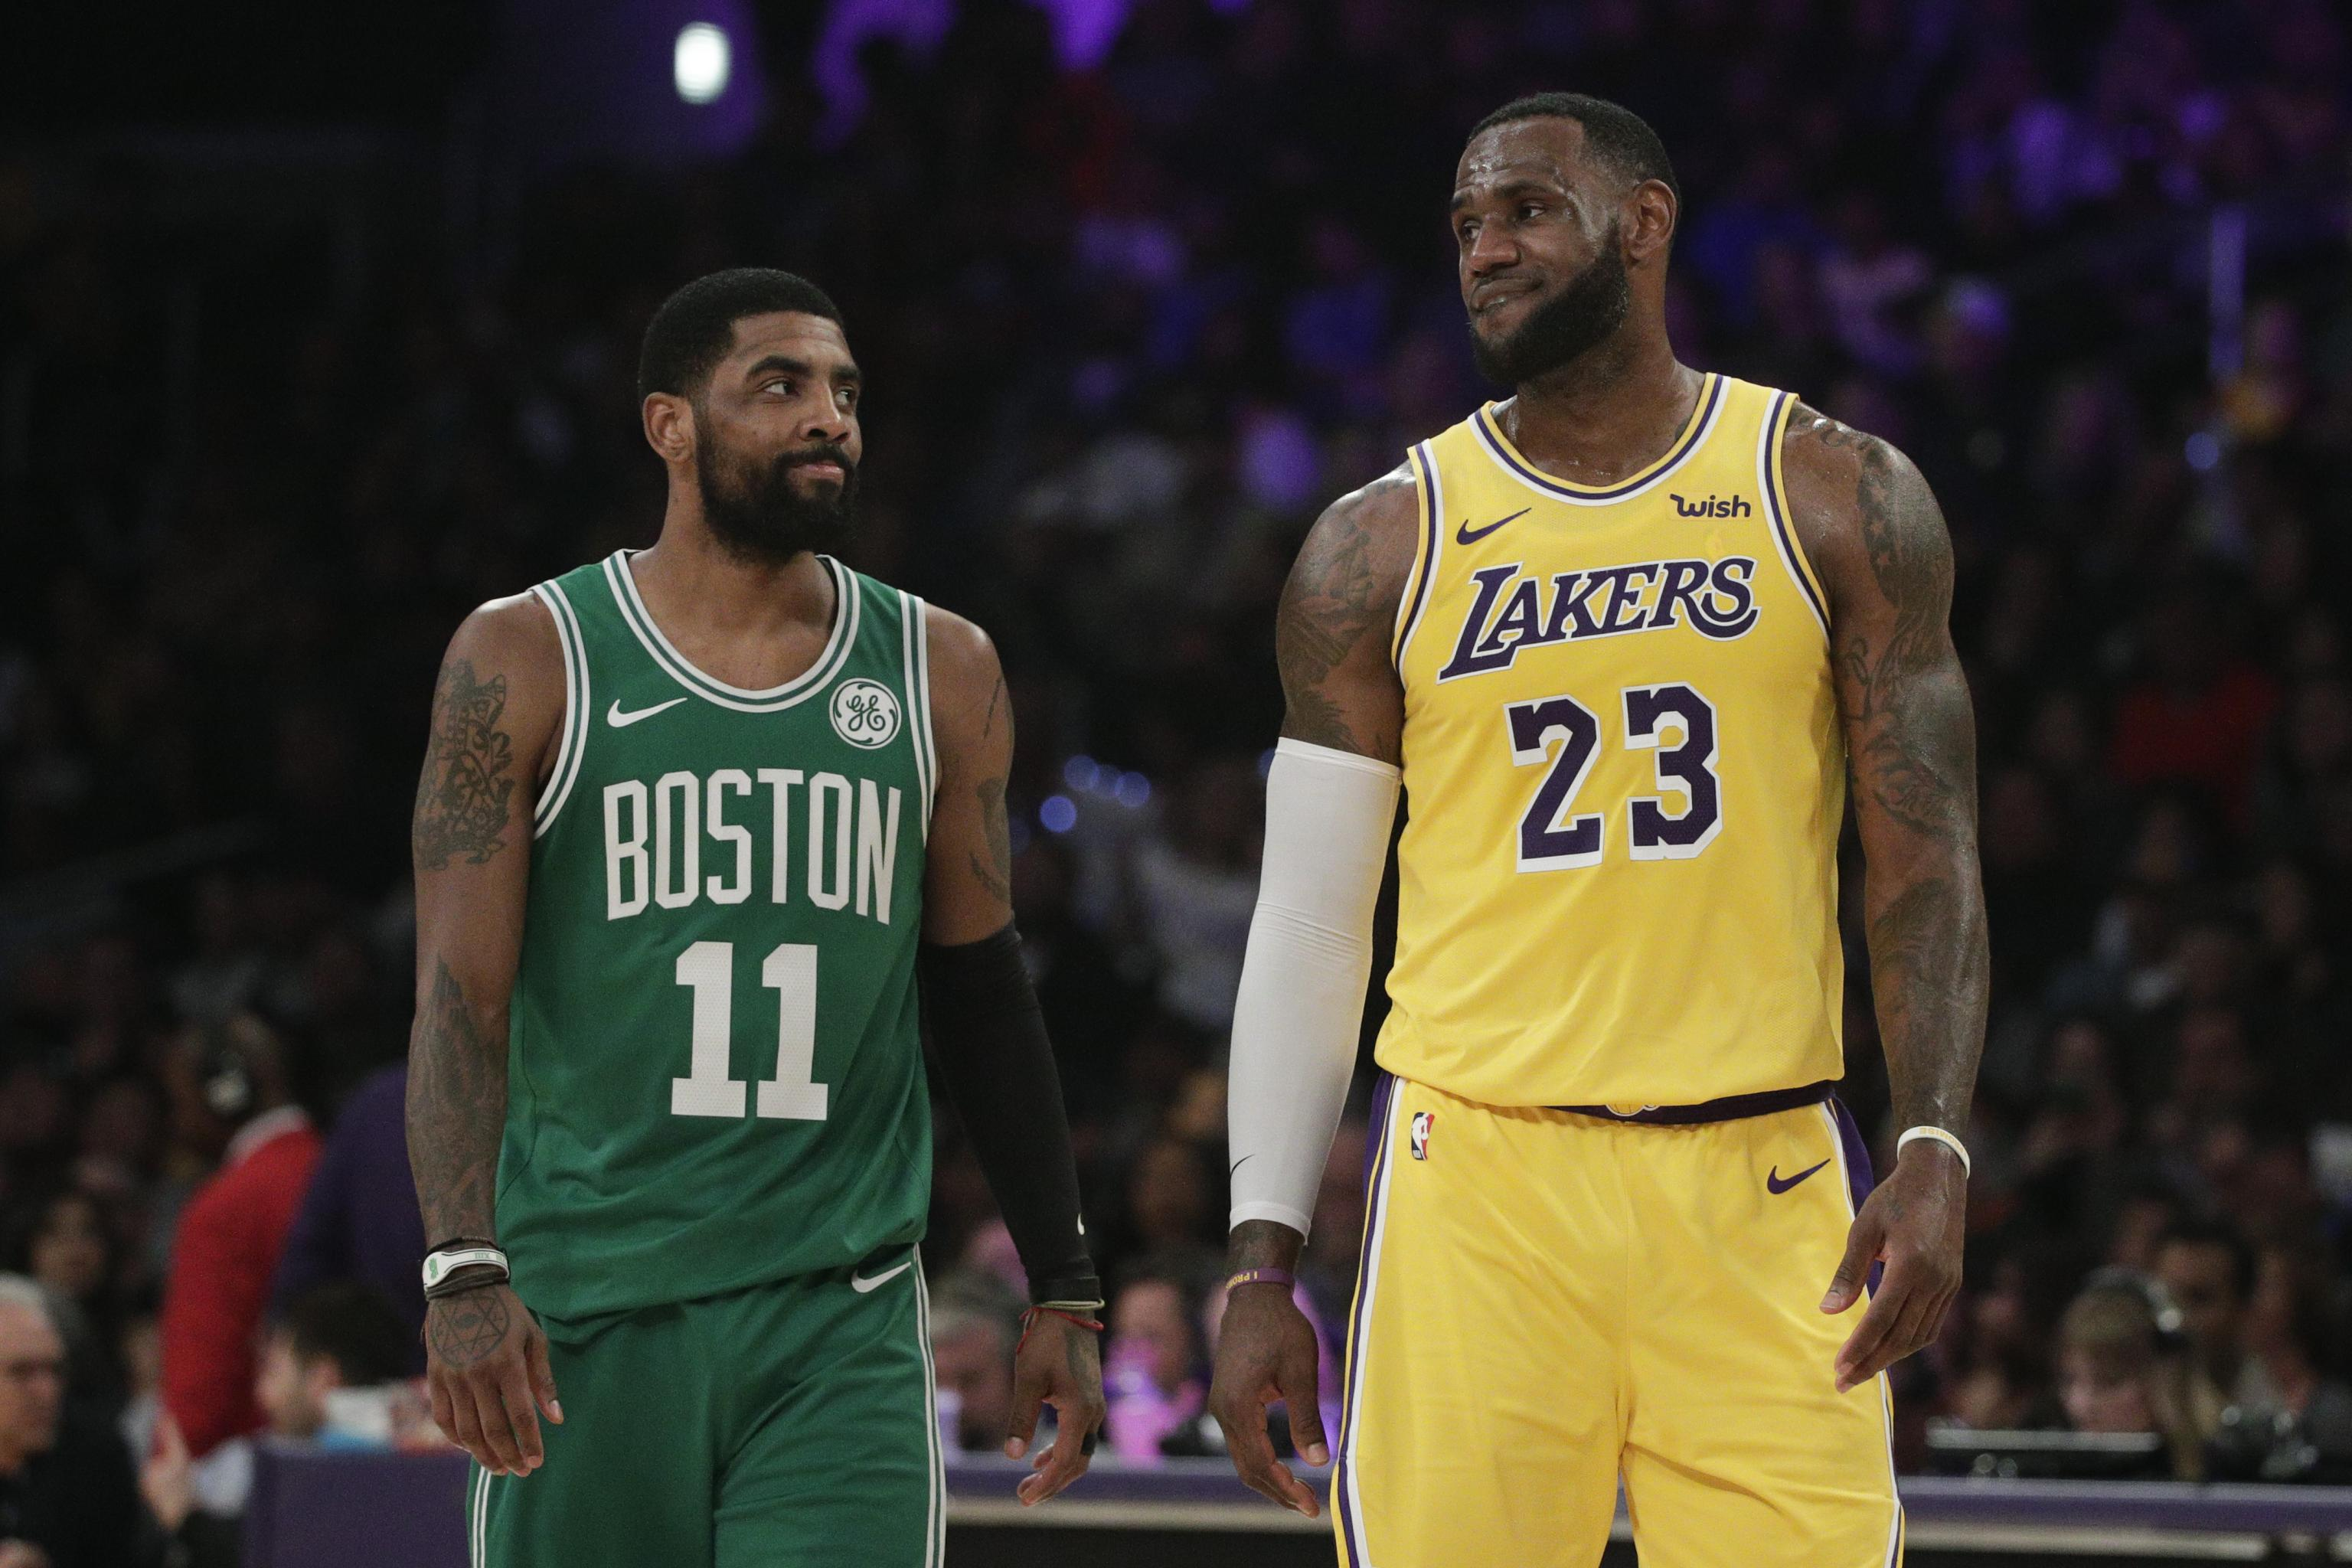 sneakers for cheap 25d90 9f550 Windhorst: Kyrie Irving 'Has Had Discussions' About Joining ...